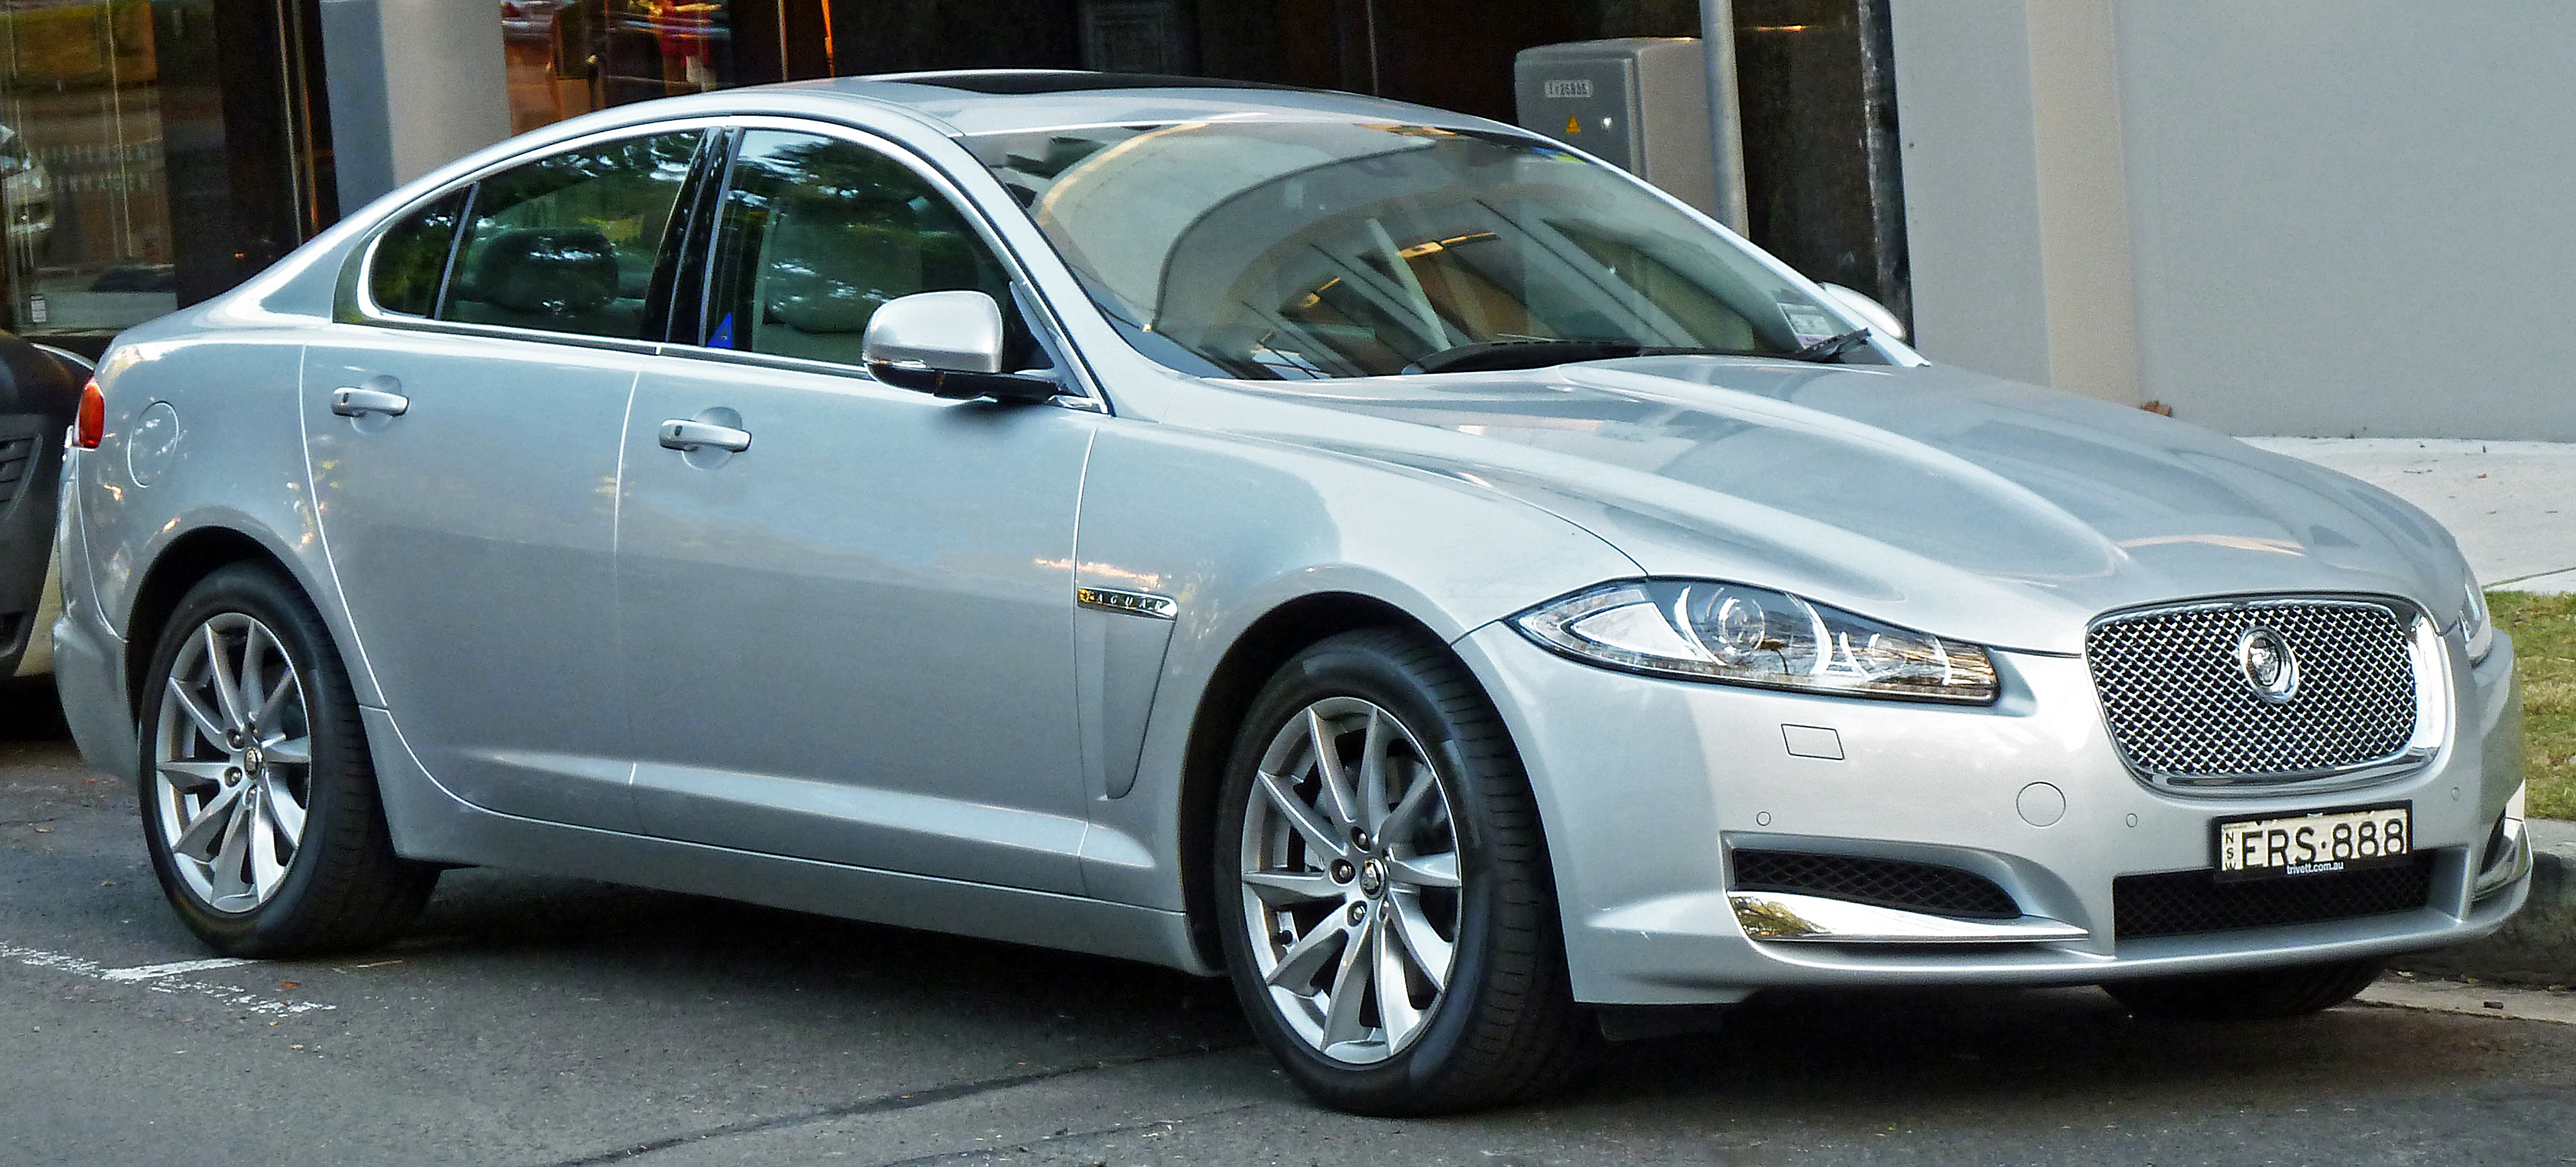 Marvelous File:2011 Jaguar XF (X250 MY11) Sedan (2012 06 04